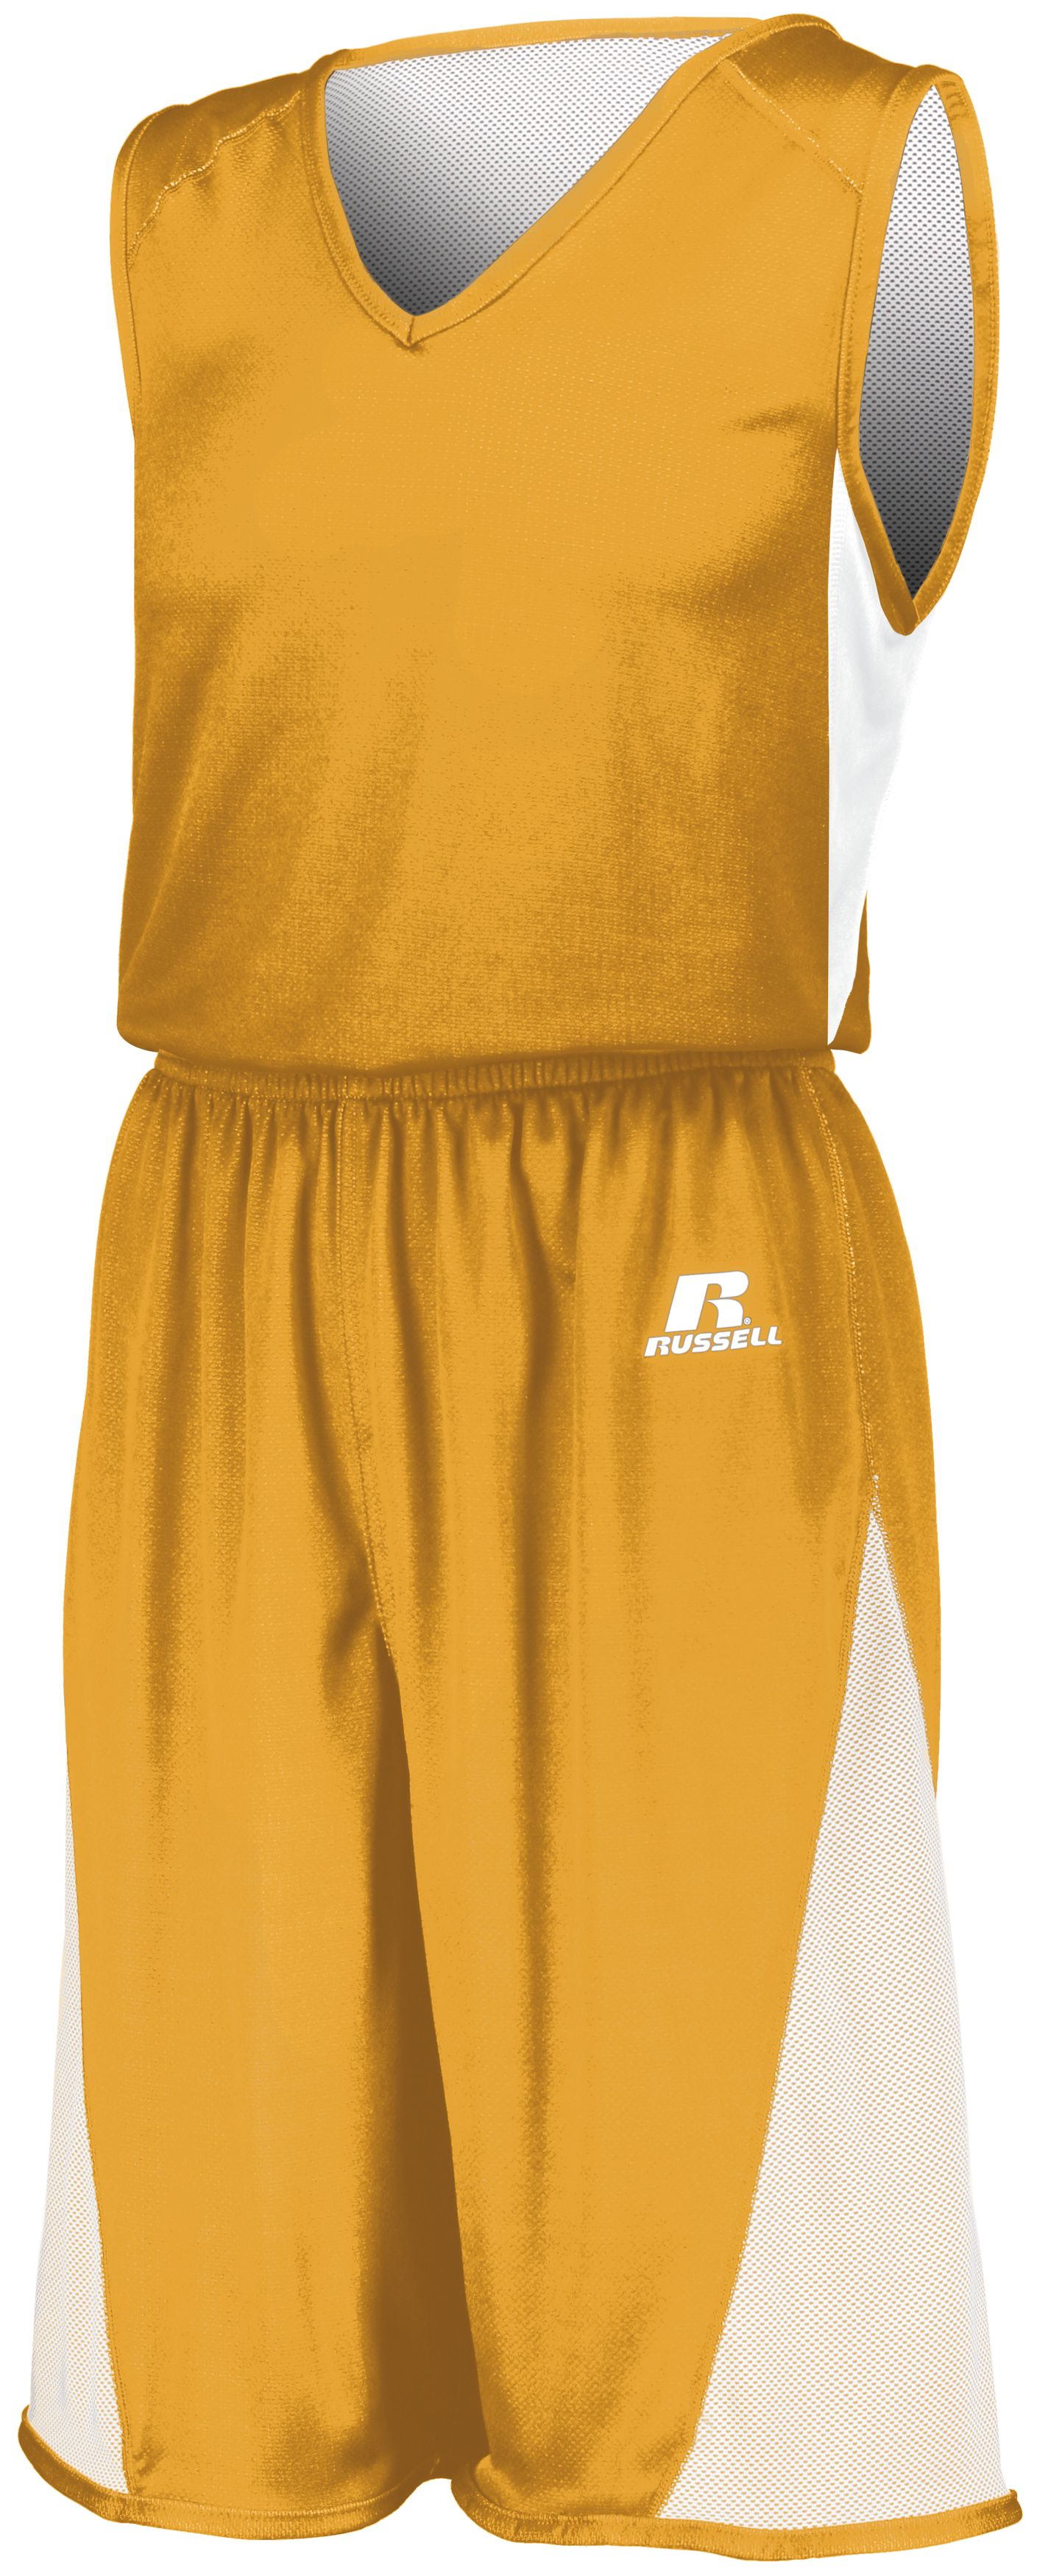 Undivided Single Ply Reversible Jersey - GOLD/WHITE